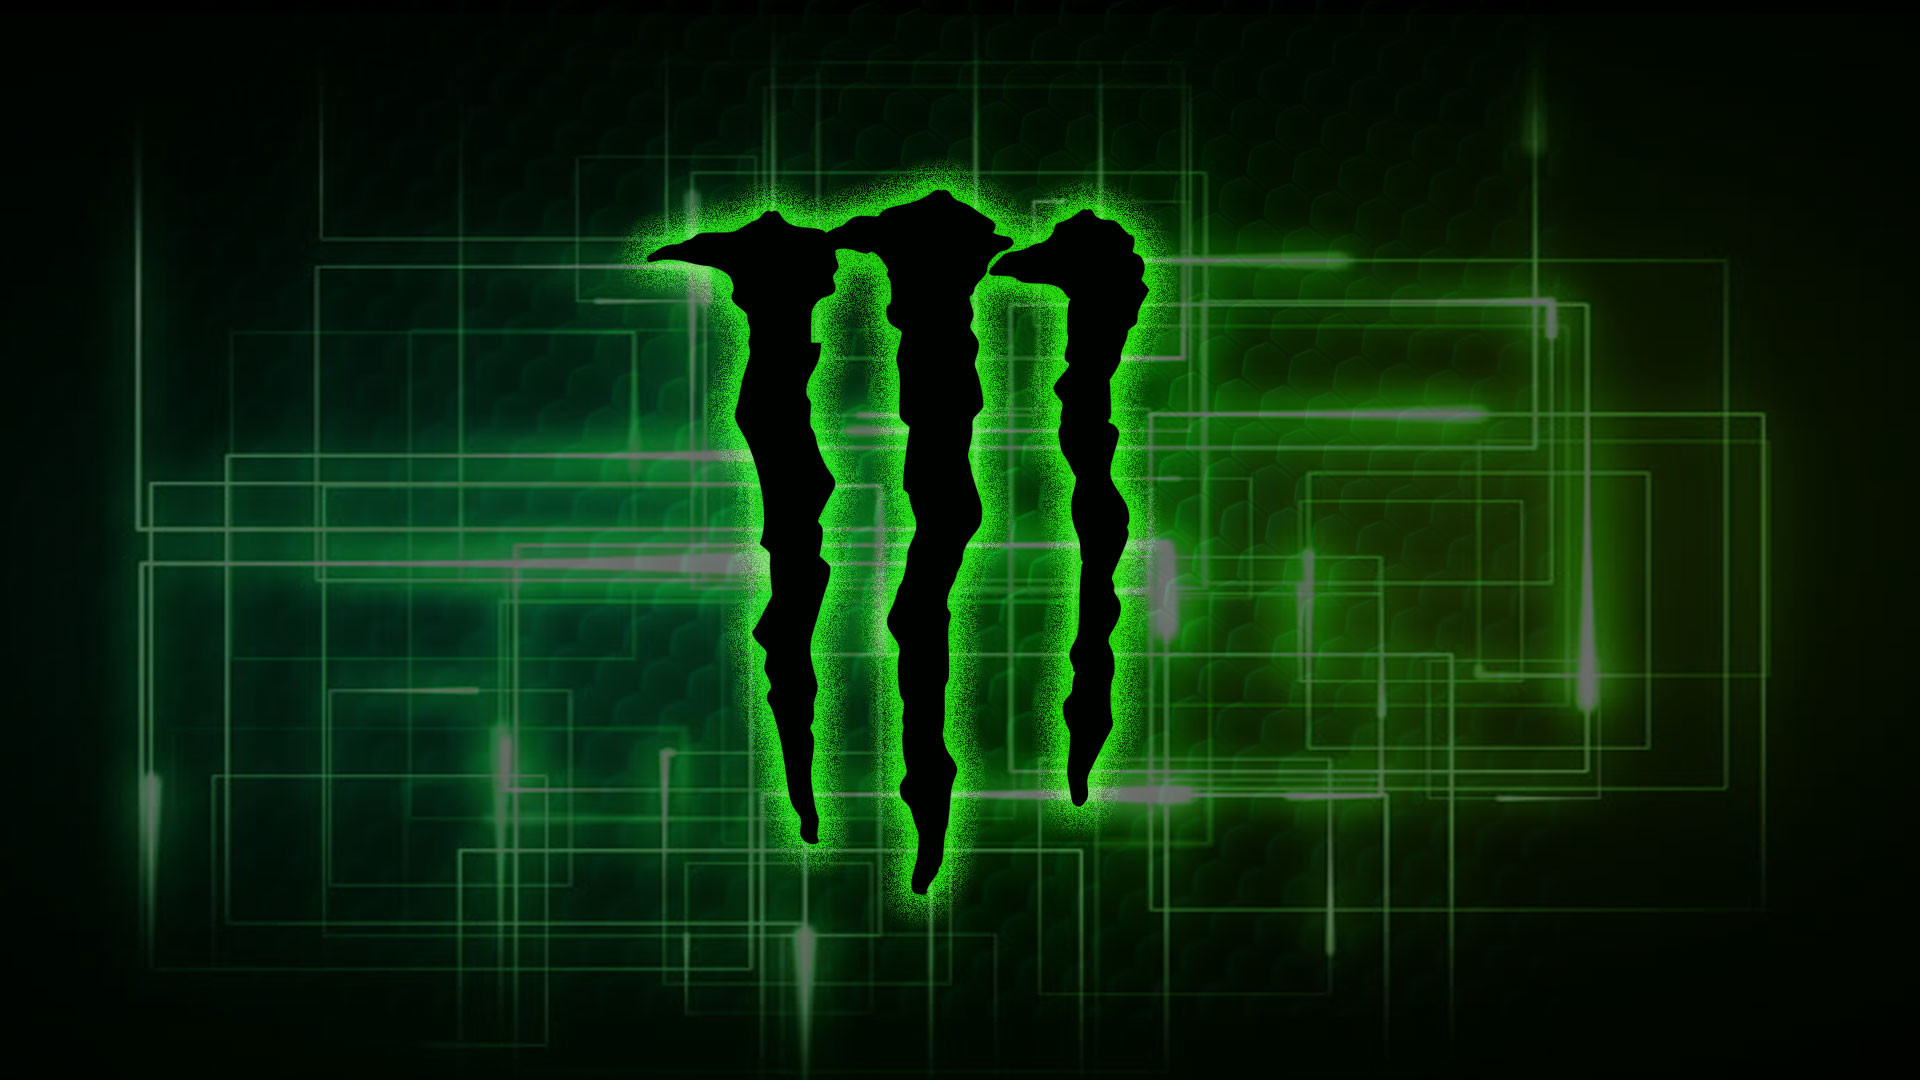 monster energy logo wallpapers  72 images Red Fox Graphics red fox clip art outline vector